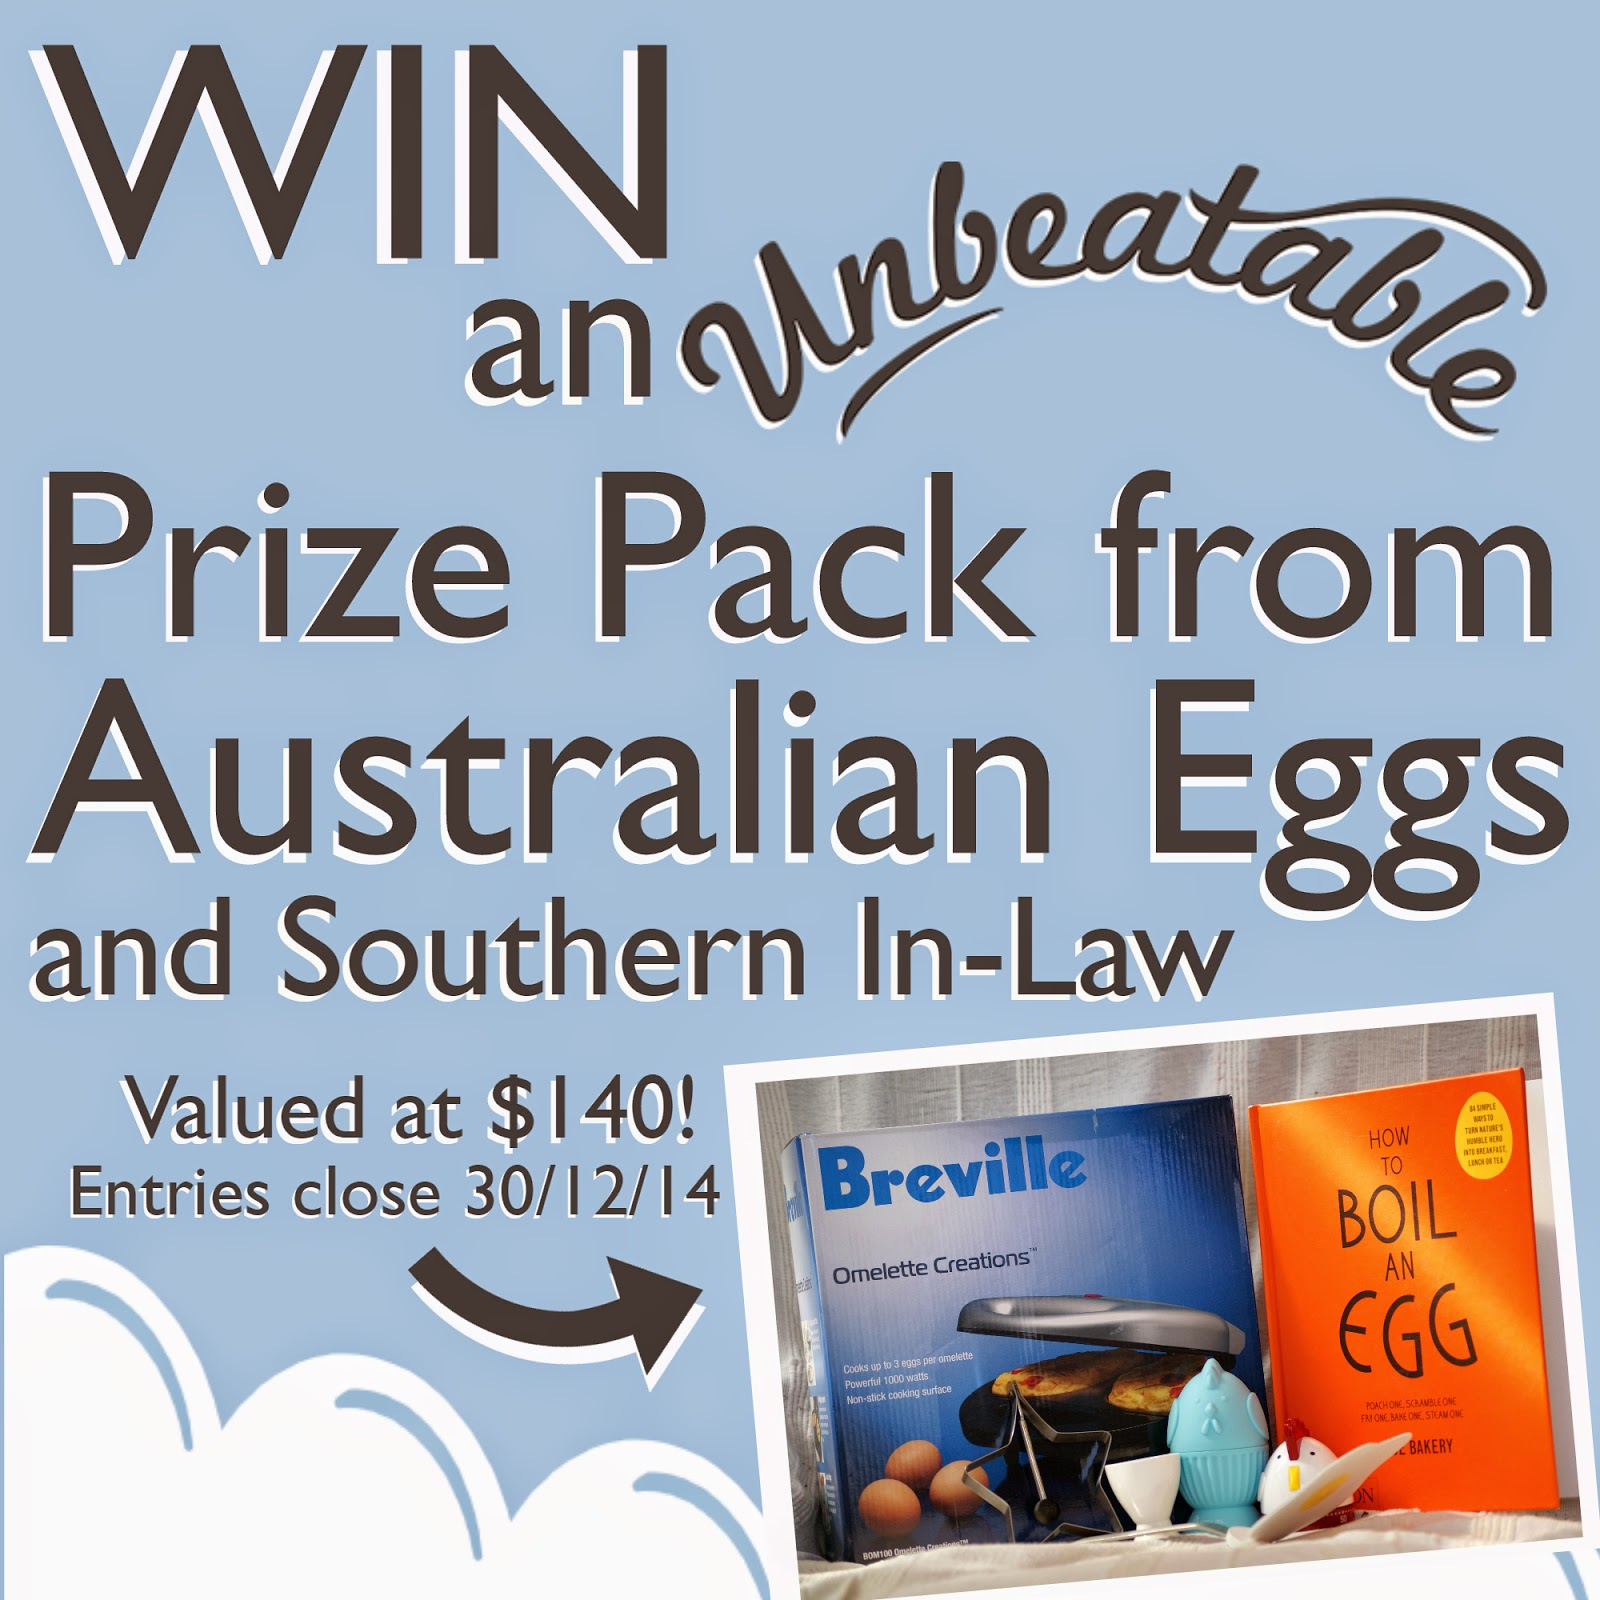 Win an Unbeatable Prize Pack from Australian Eggs